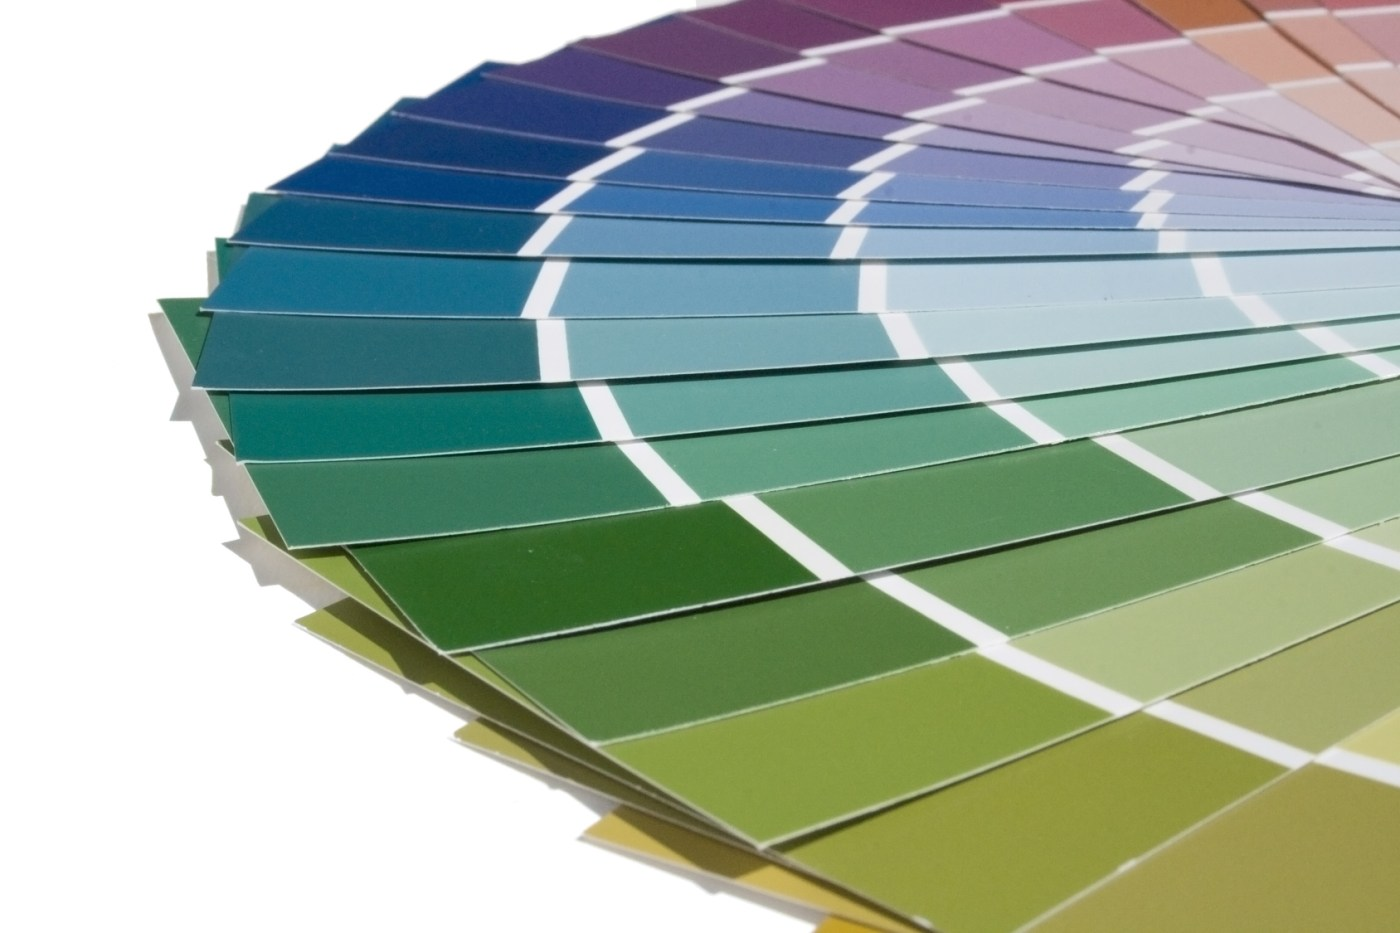 20 Great Paint Color Names – Interiors for Families